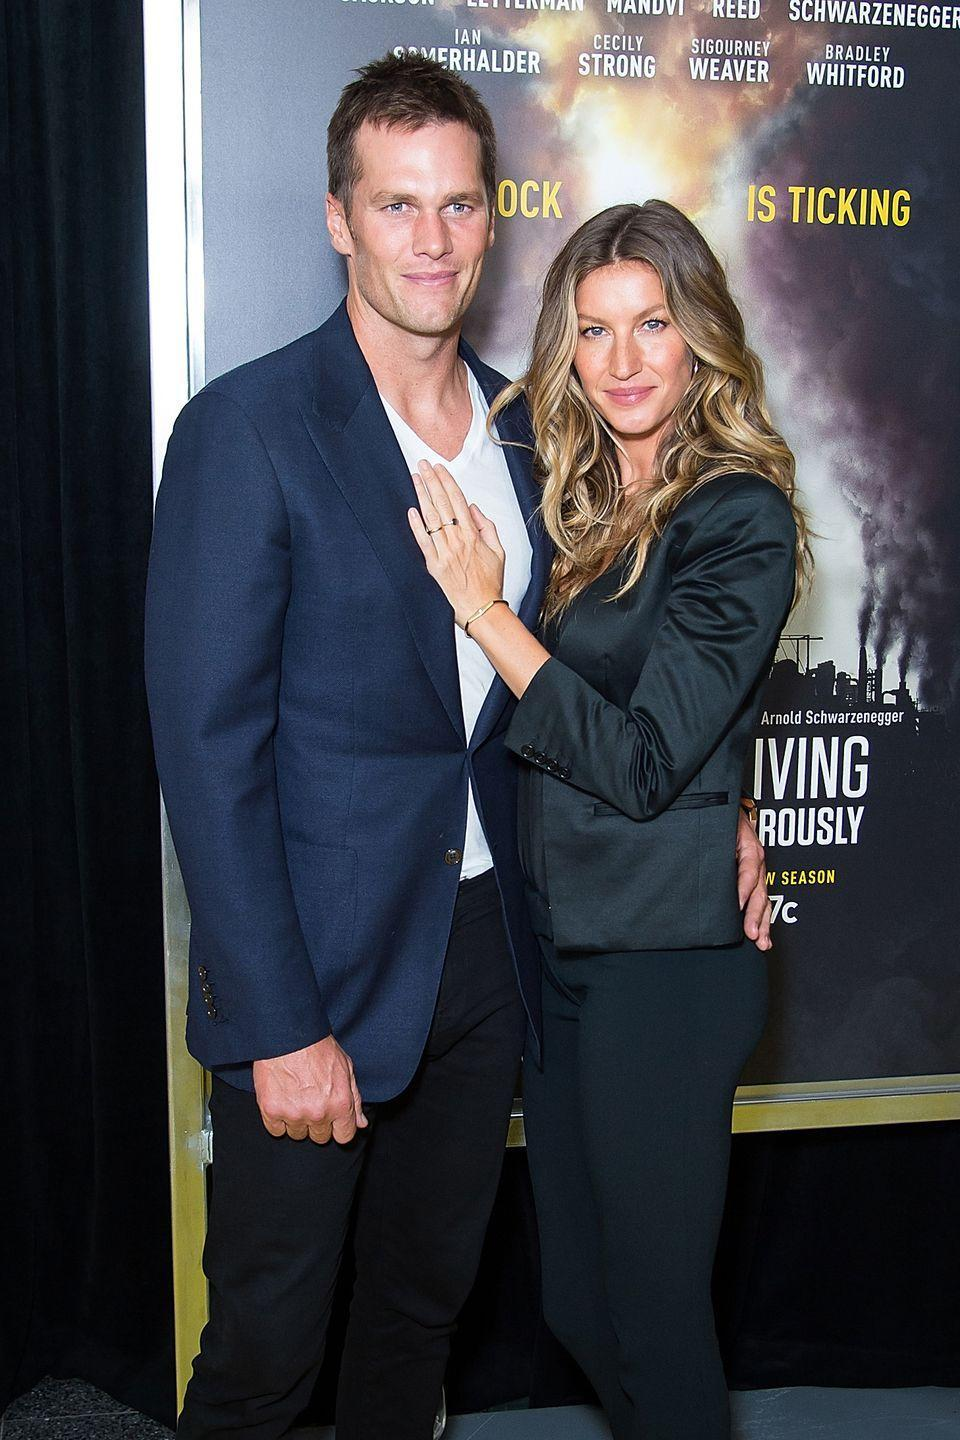 <p>It's not <em>too</em> strange that a hunky NFL player and a gorgeous former Victoria's Secret Angel both have similarly flawless bone structure and skin. But their coloring is also close enough that the married pair and parents of two could easily pass for siblings. </p>